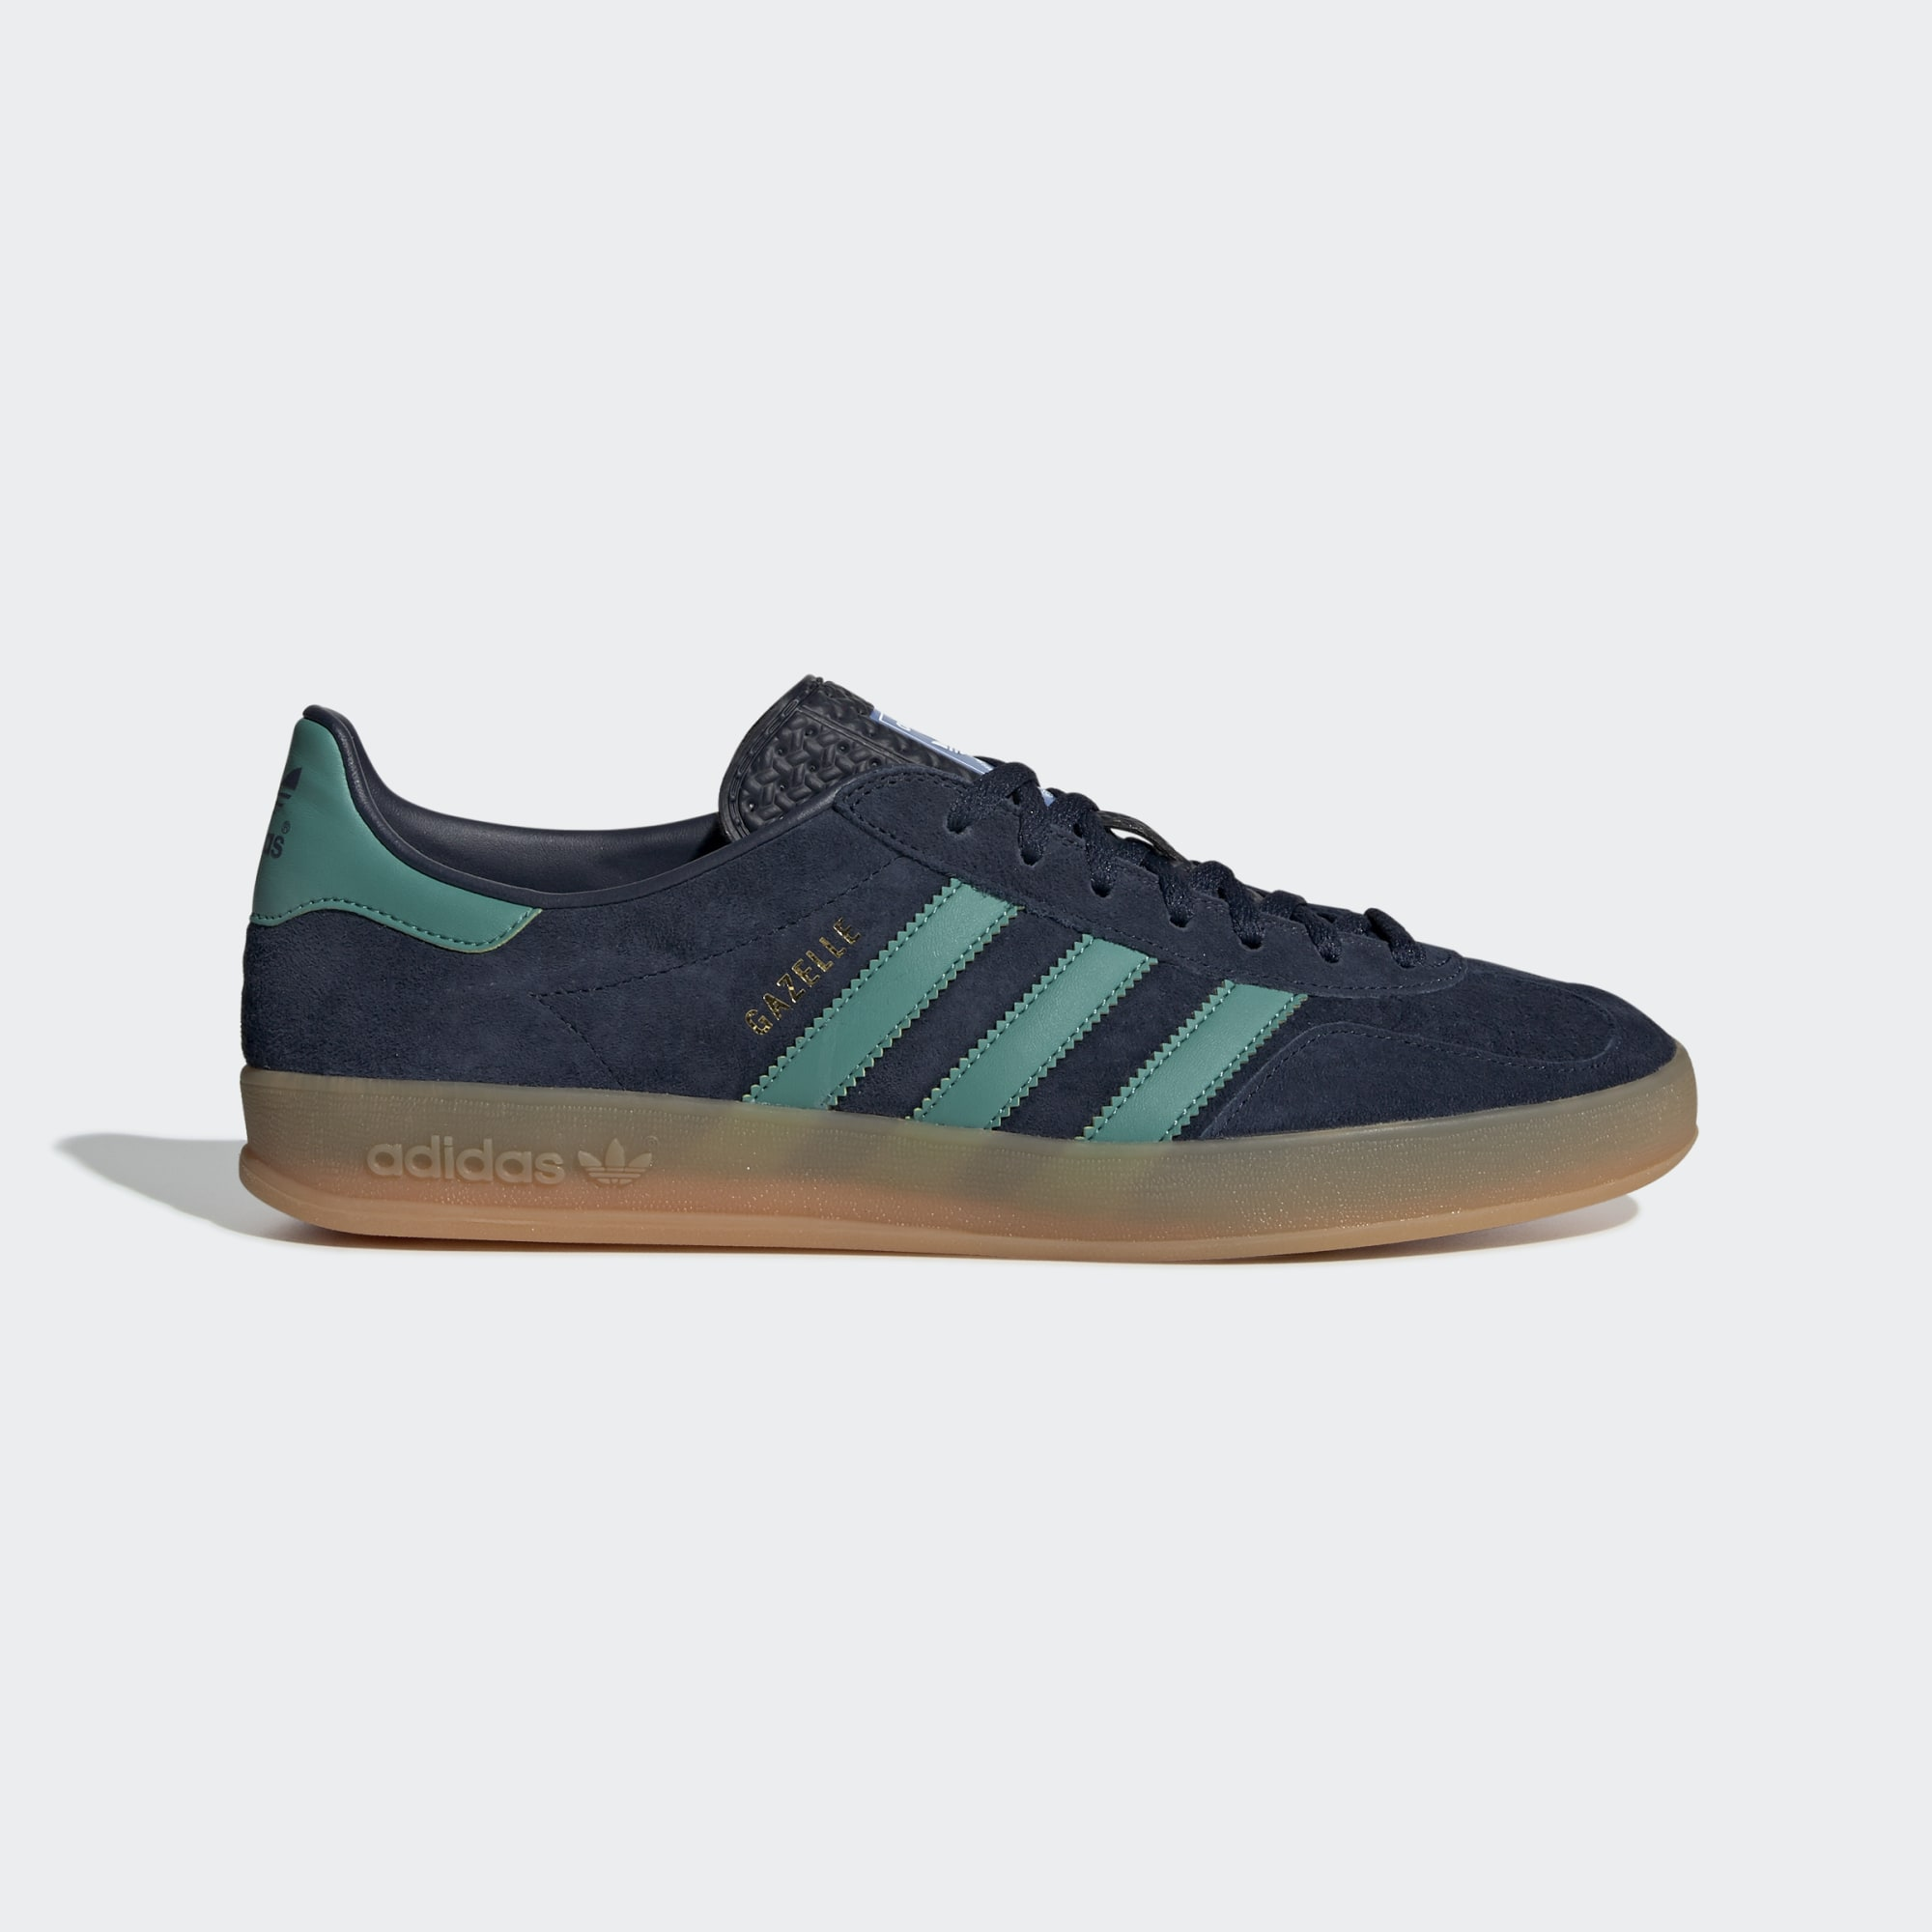 Adidas Gazelle Indoor Shoes - Collegiate Navy / Active Green / Bluebird